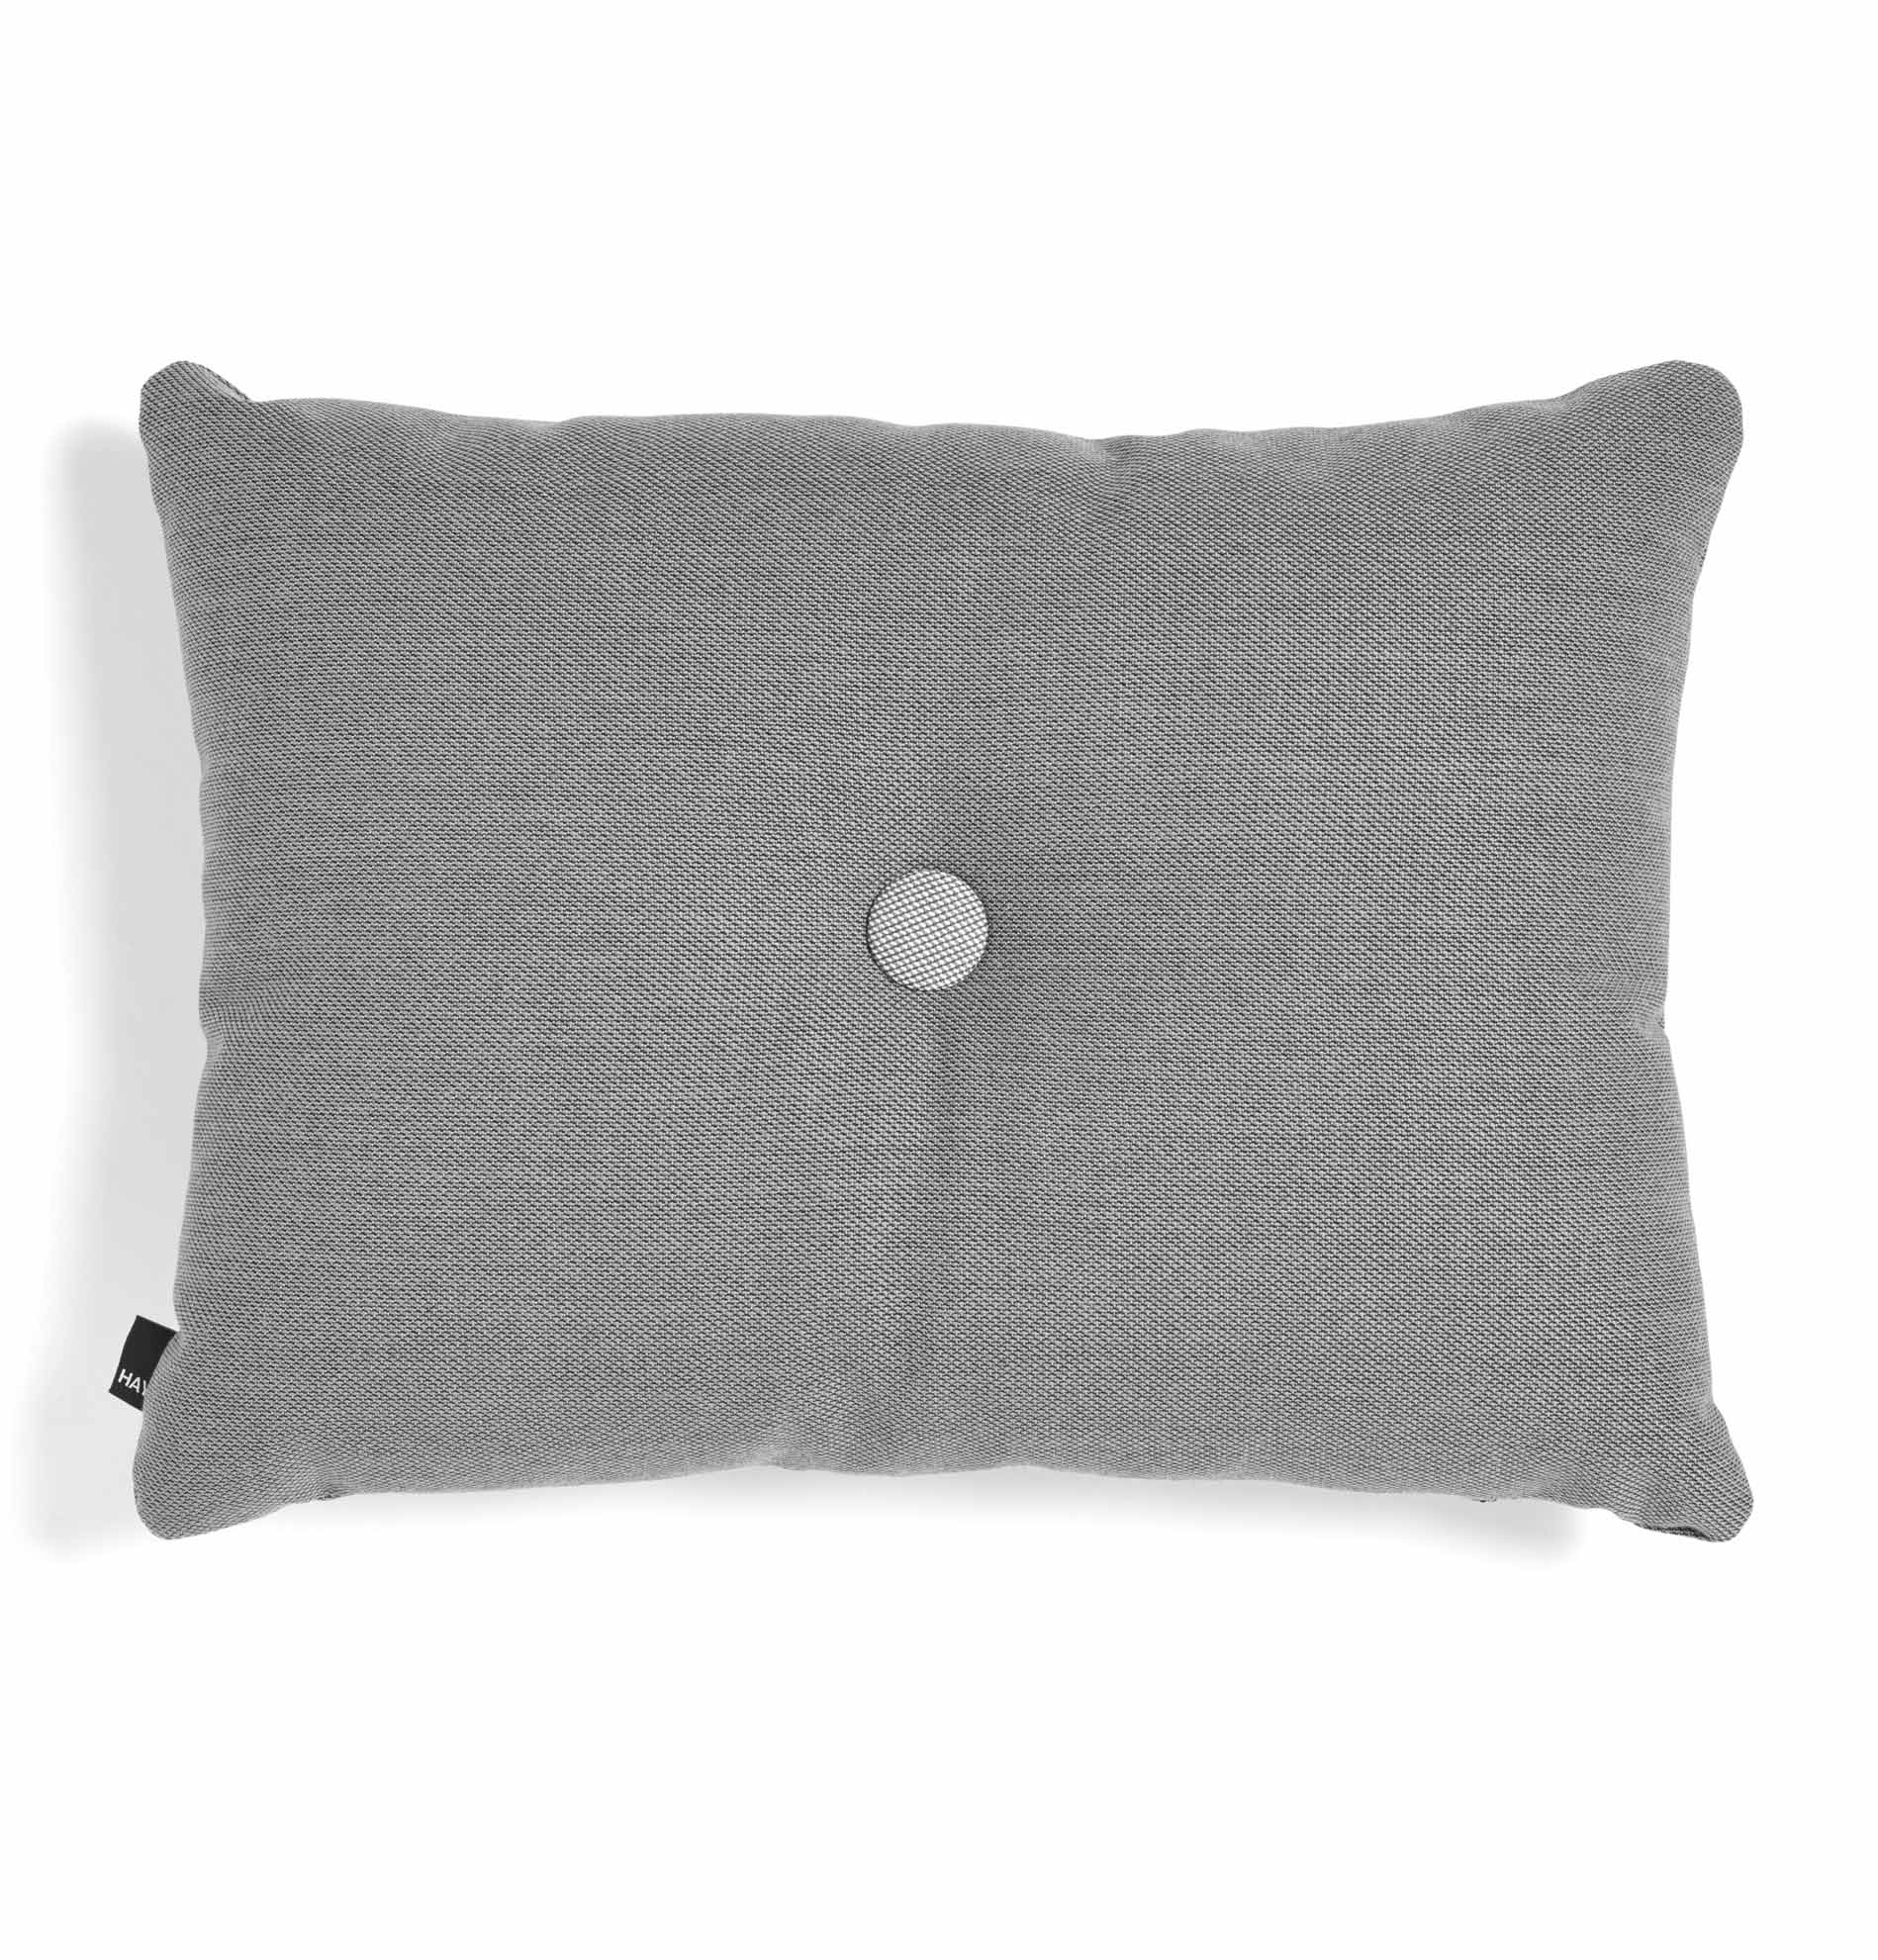 HAY Dot Cushion - Dark Grey